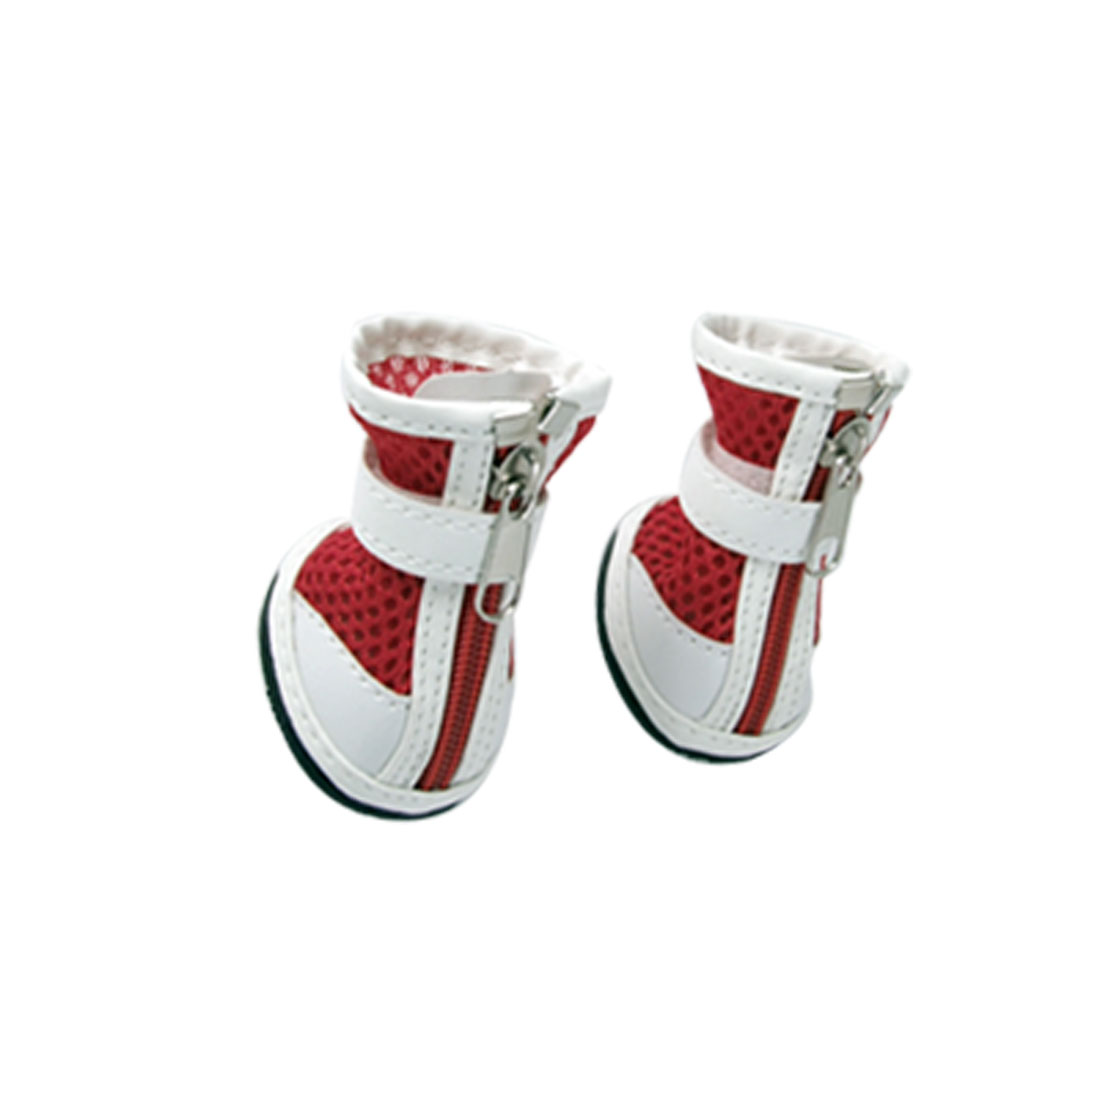 Size 1 Puppy Dog Detachable Zippered Meshy Boots Red White Shoes